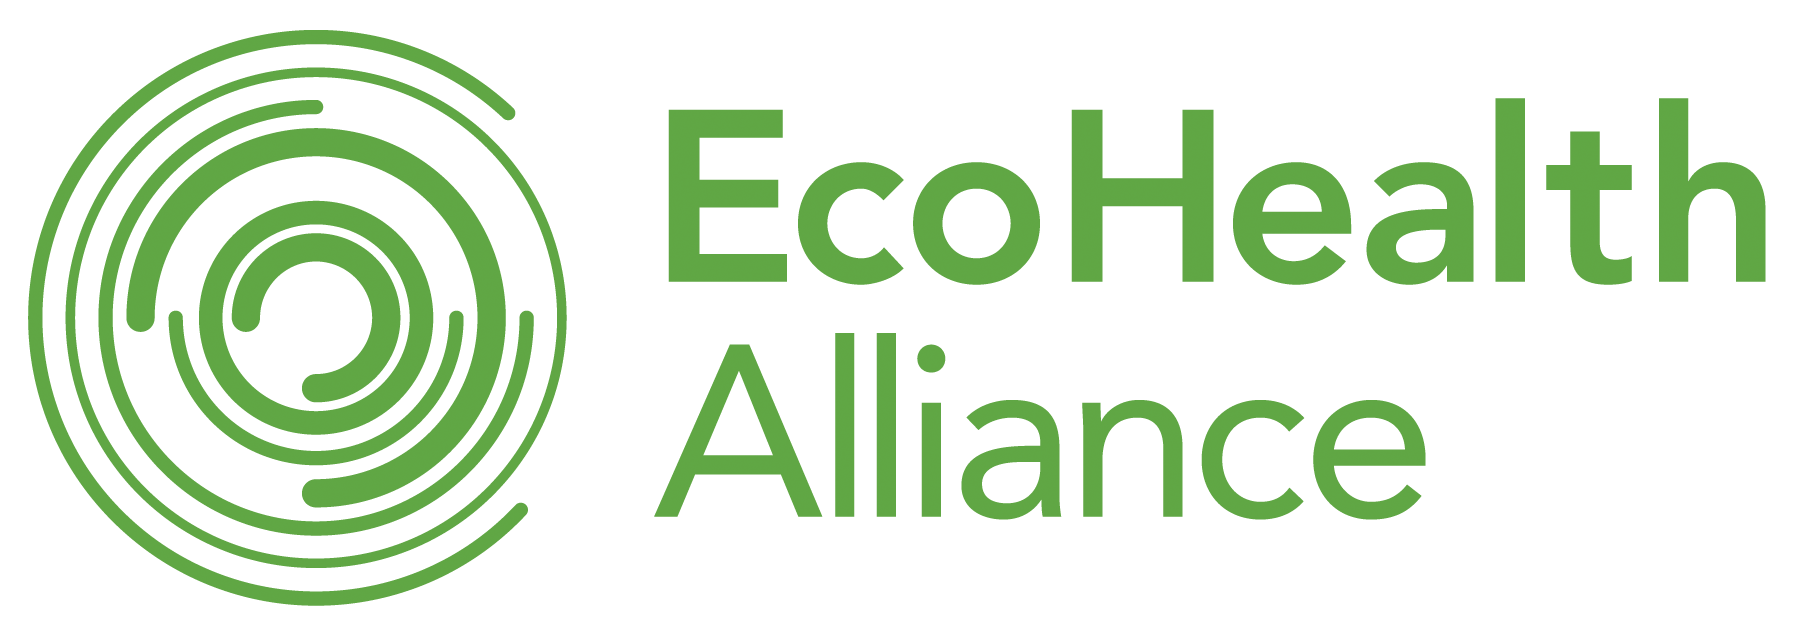 About - EcoHealth Alliance